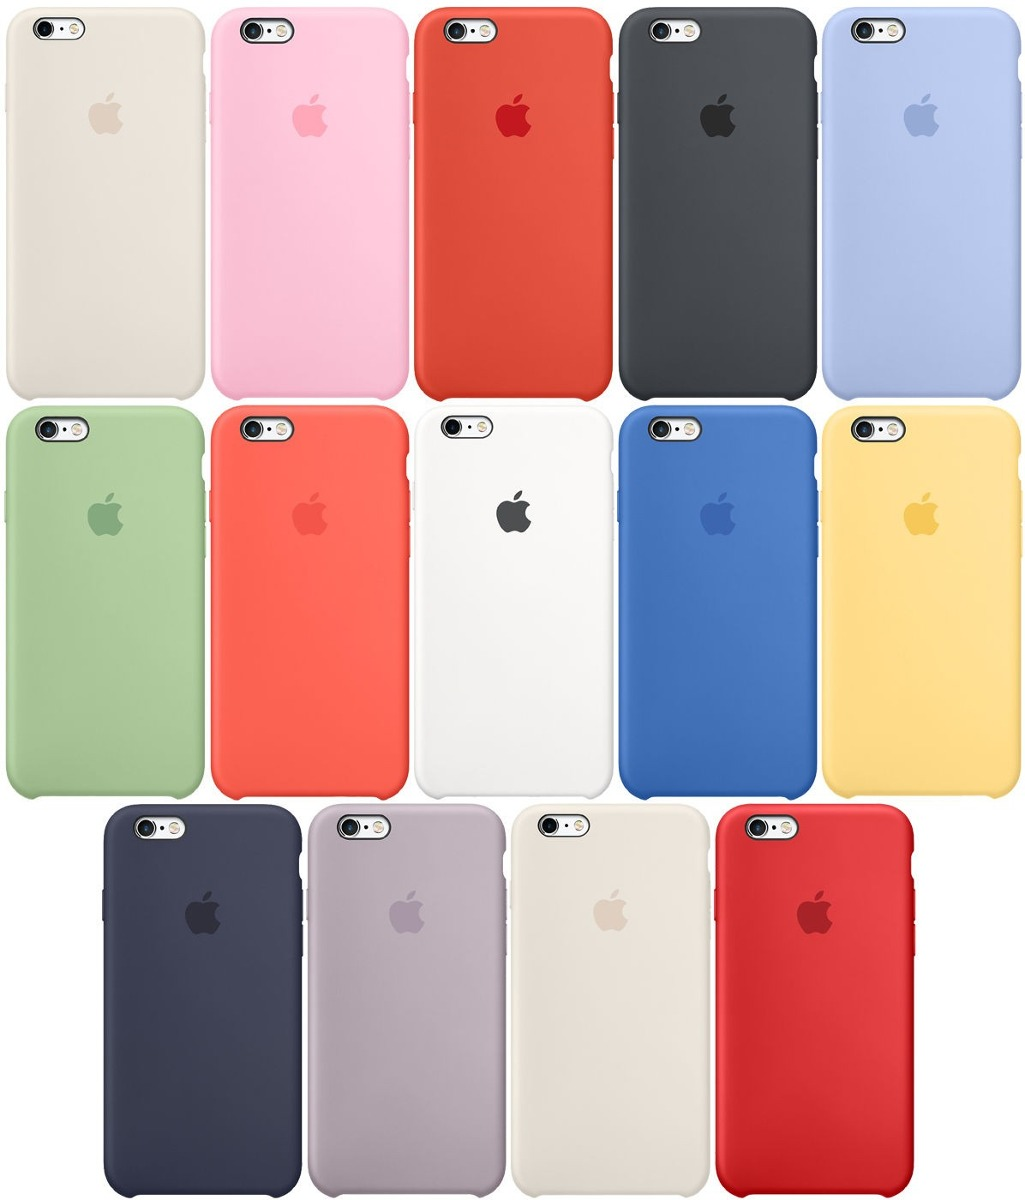 carcasa iphone 6 apple original